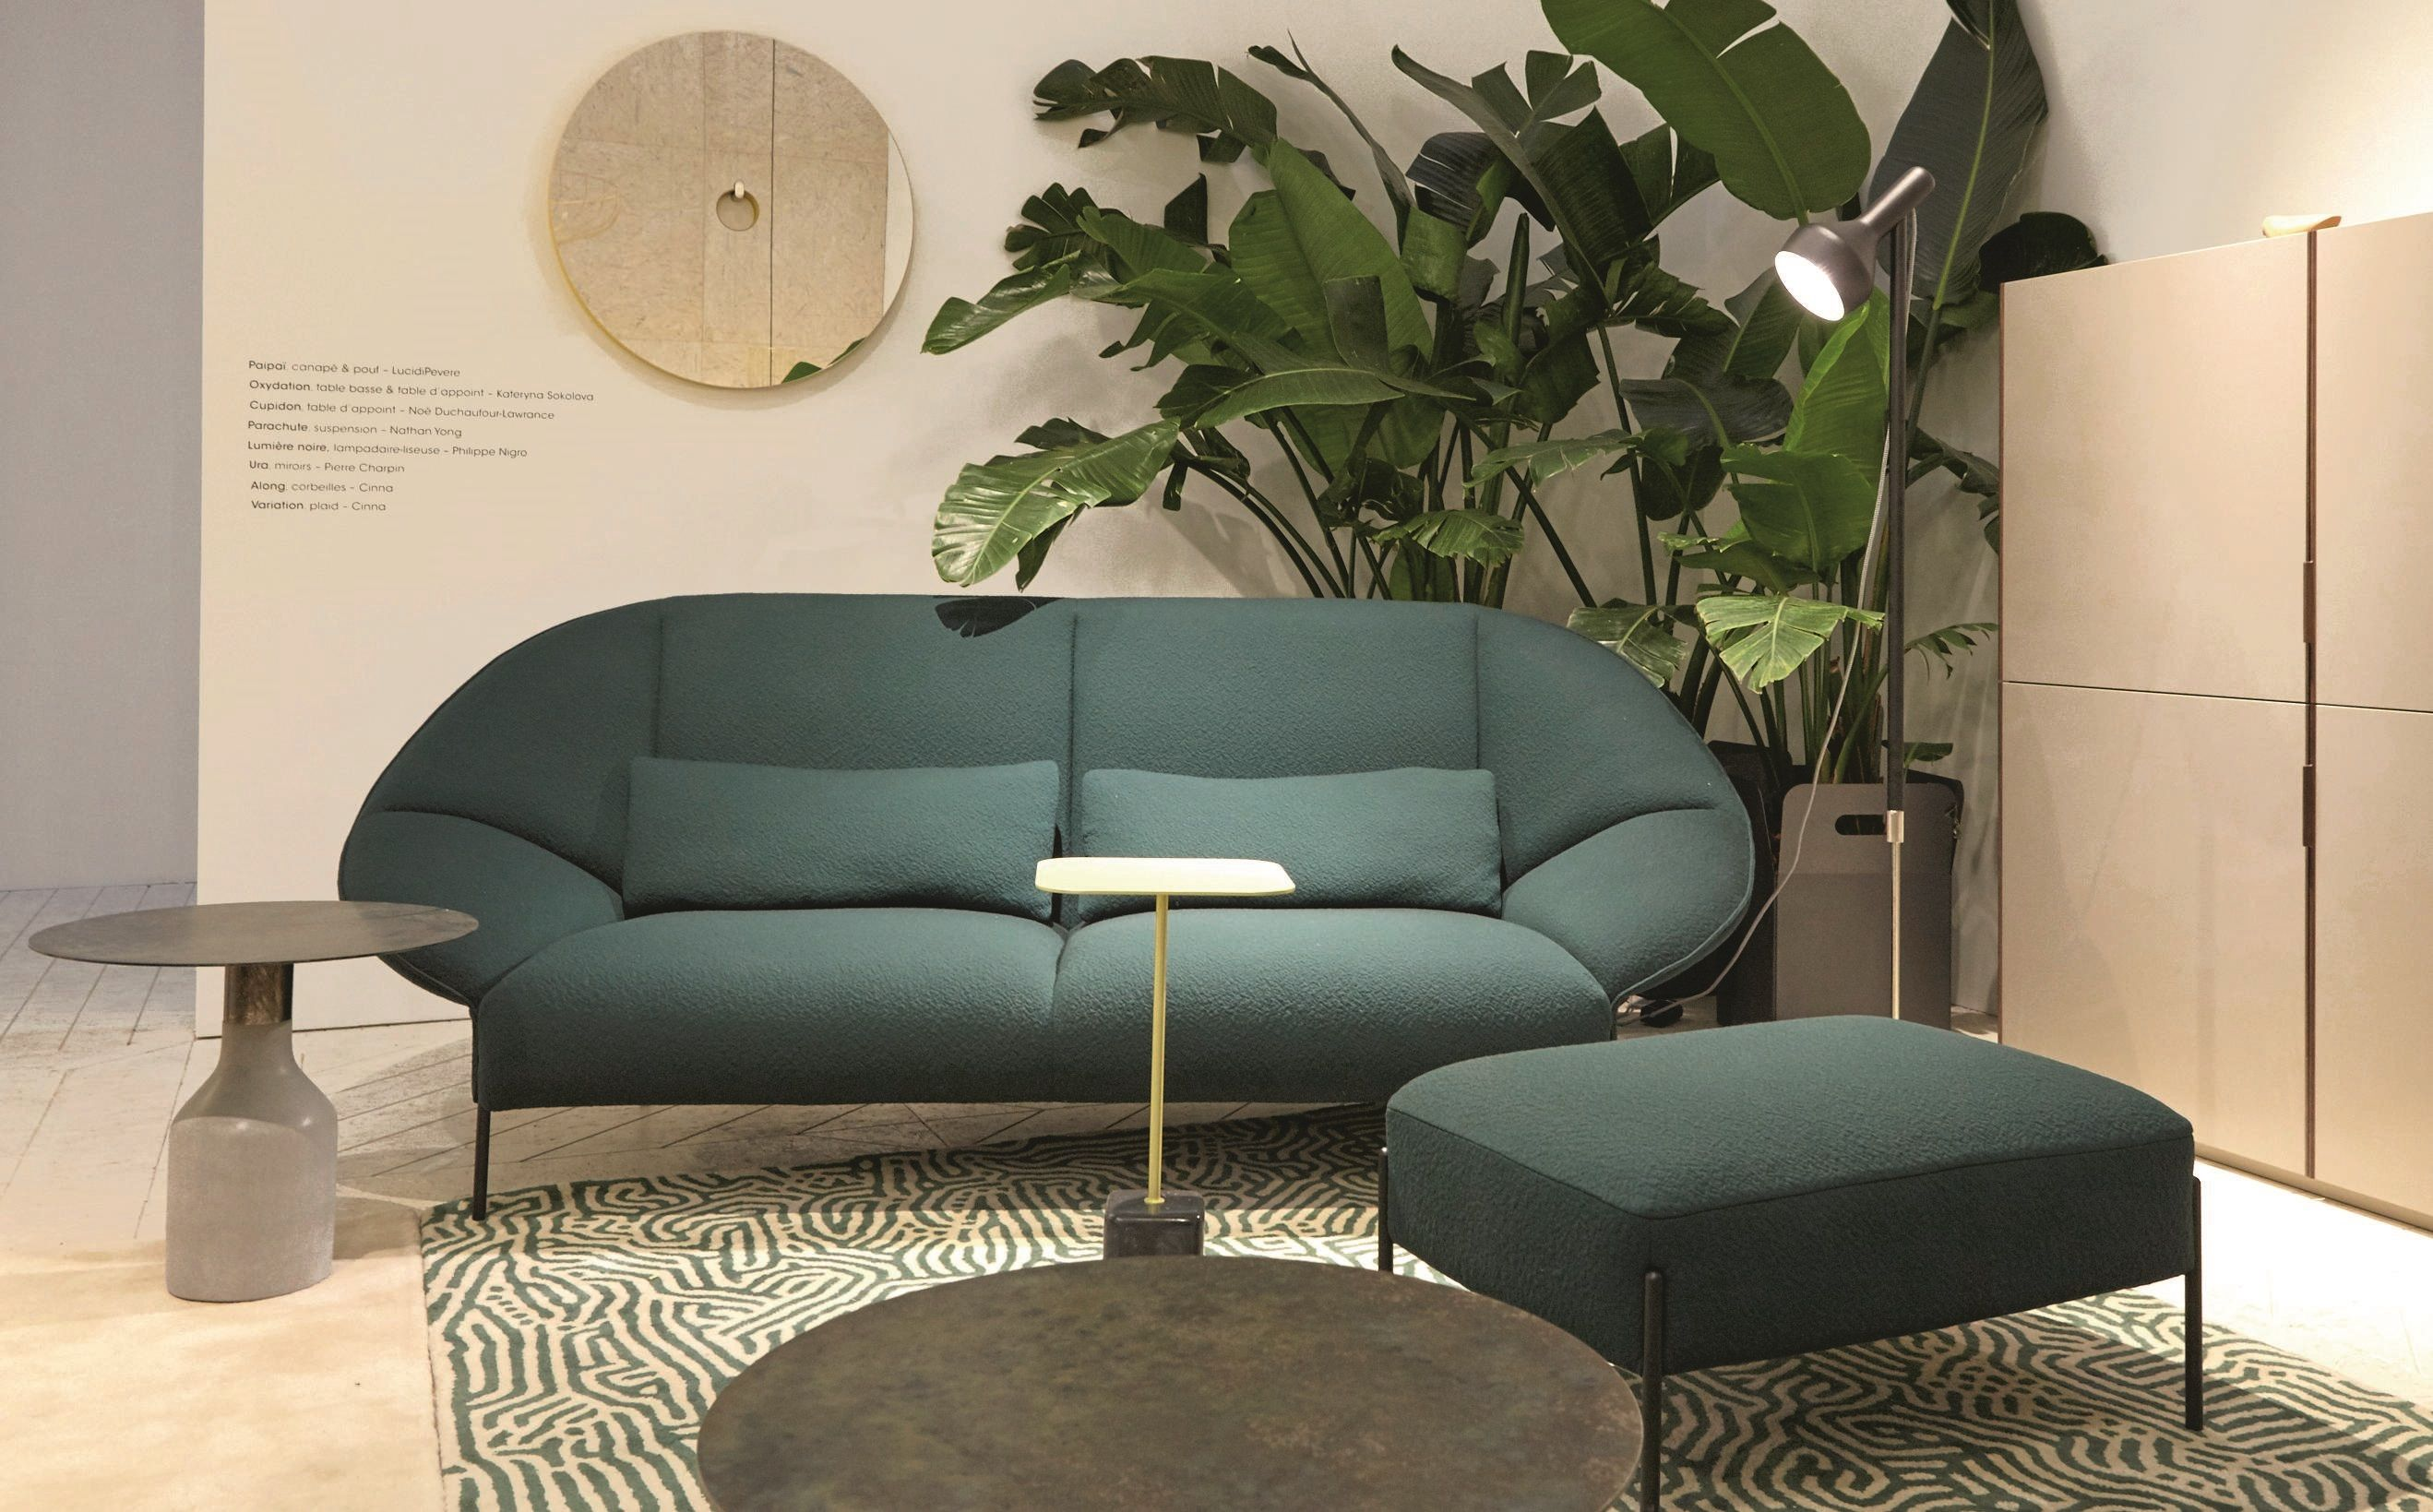 Discover The Païpaï Sofa By Lucidipevere Designed To Offer